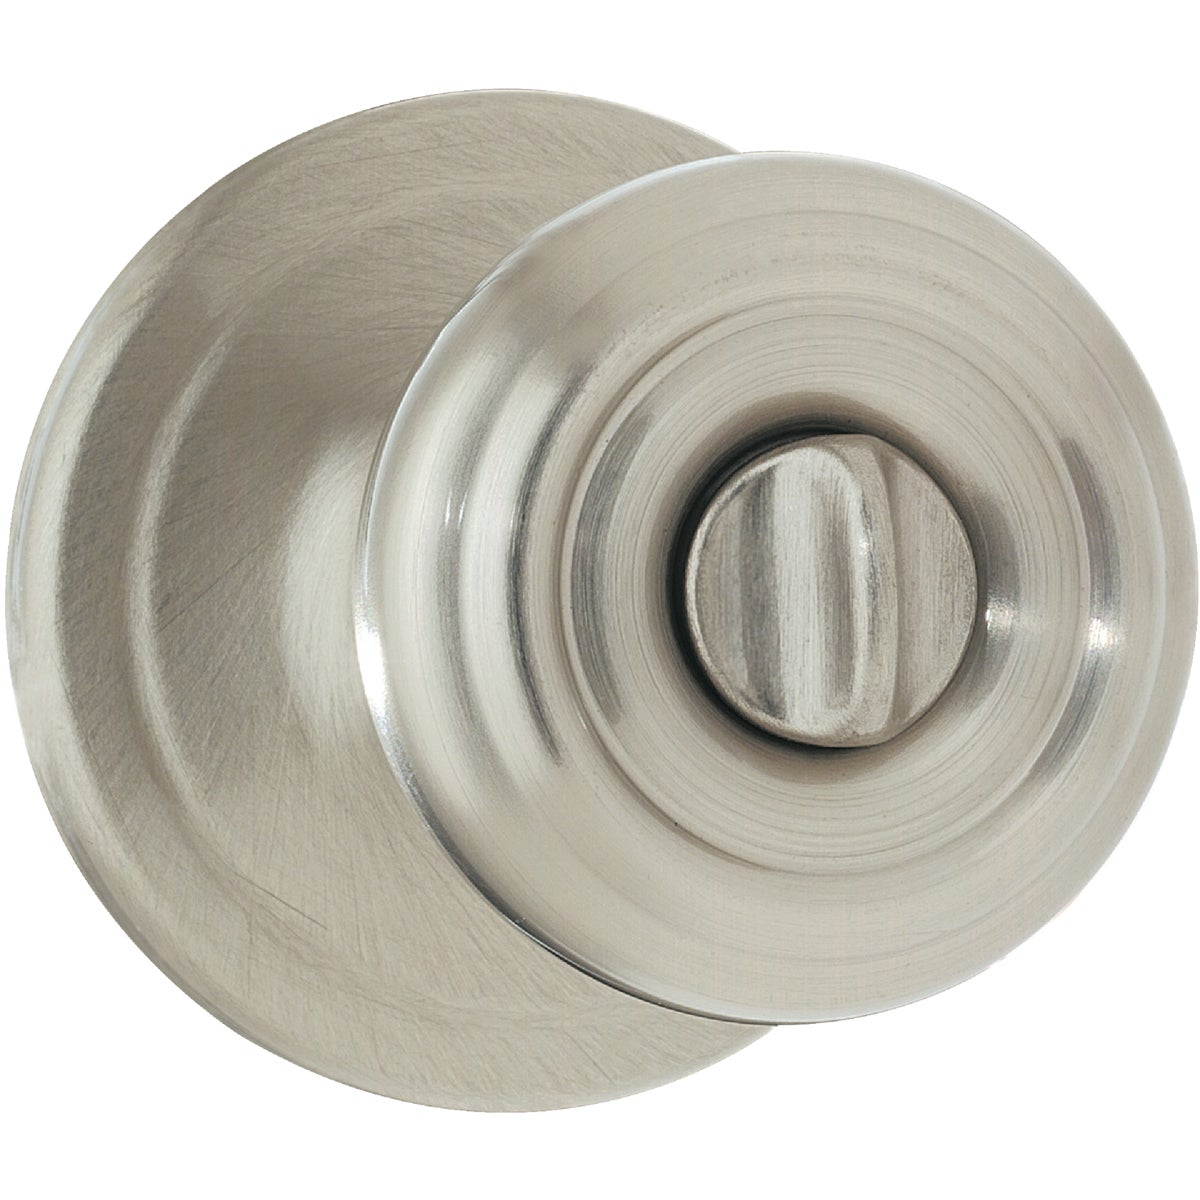 SN CAMERON PRIVACY KNOB - 730CN 15 CP by Kwikset